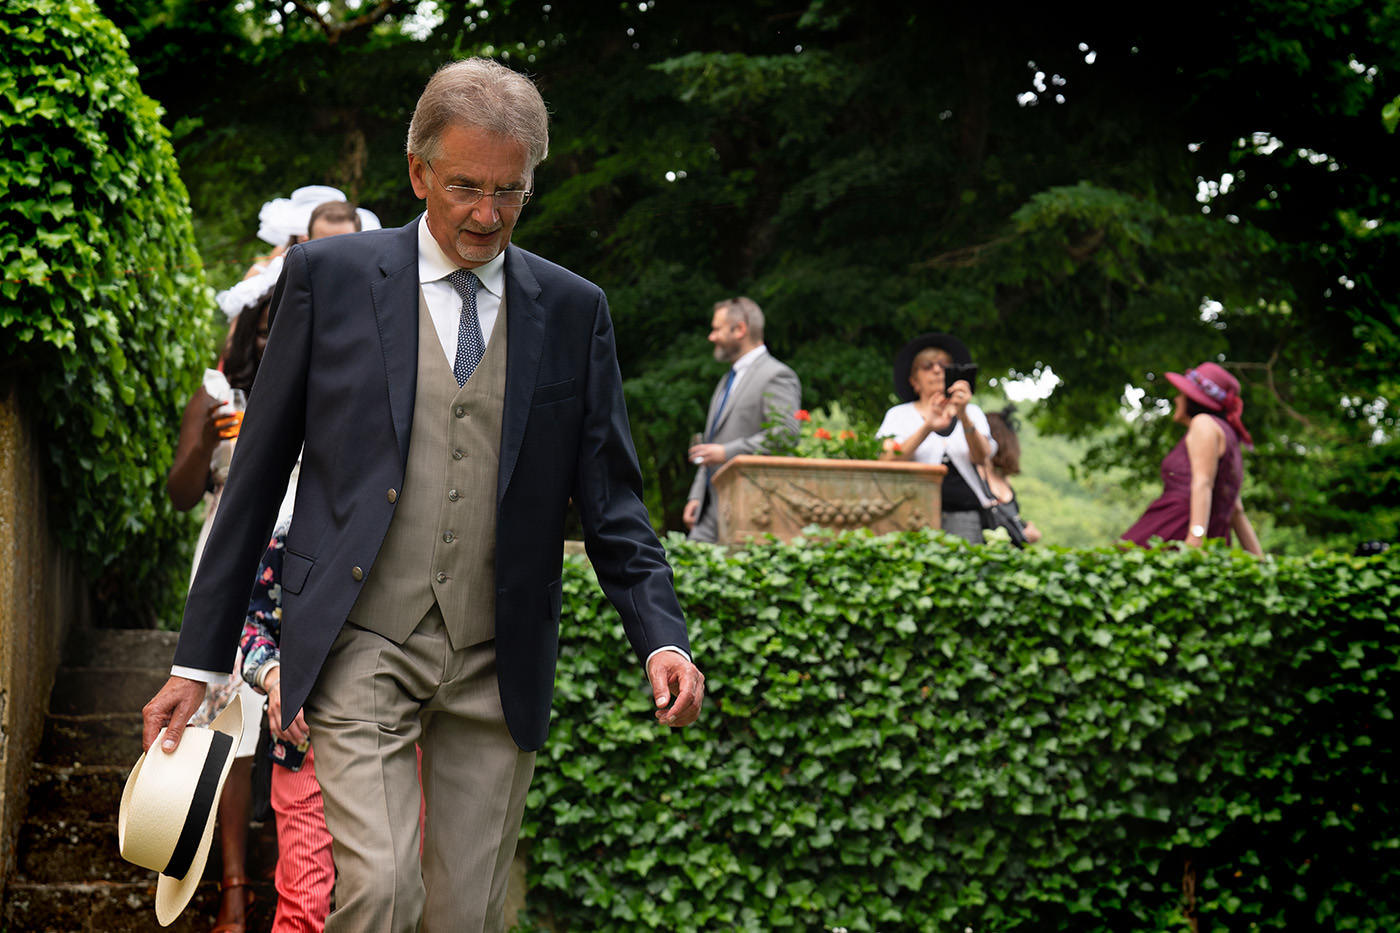 Same-Sex Wedding Photographer Florence: Timur & Guillaume. Guests walking toward the ceremony area